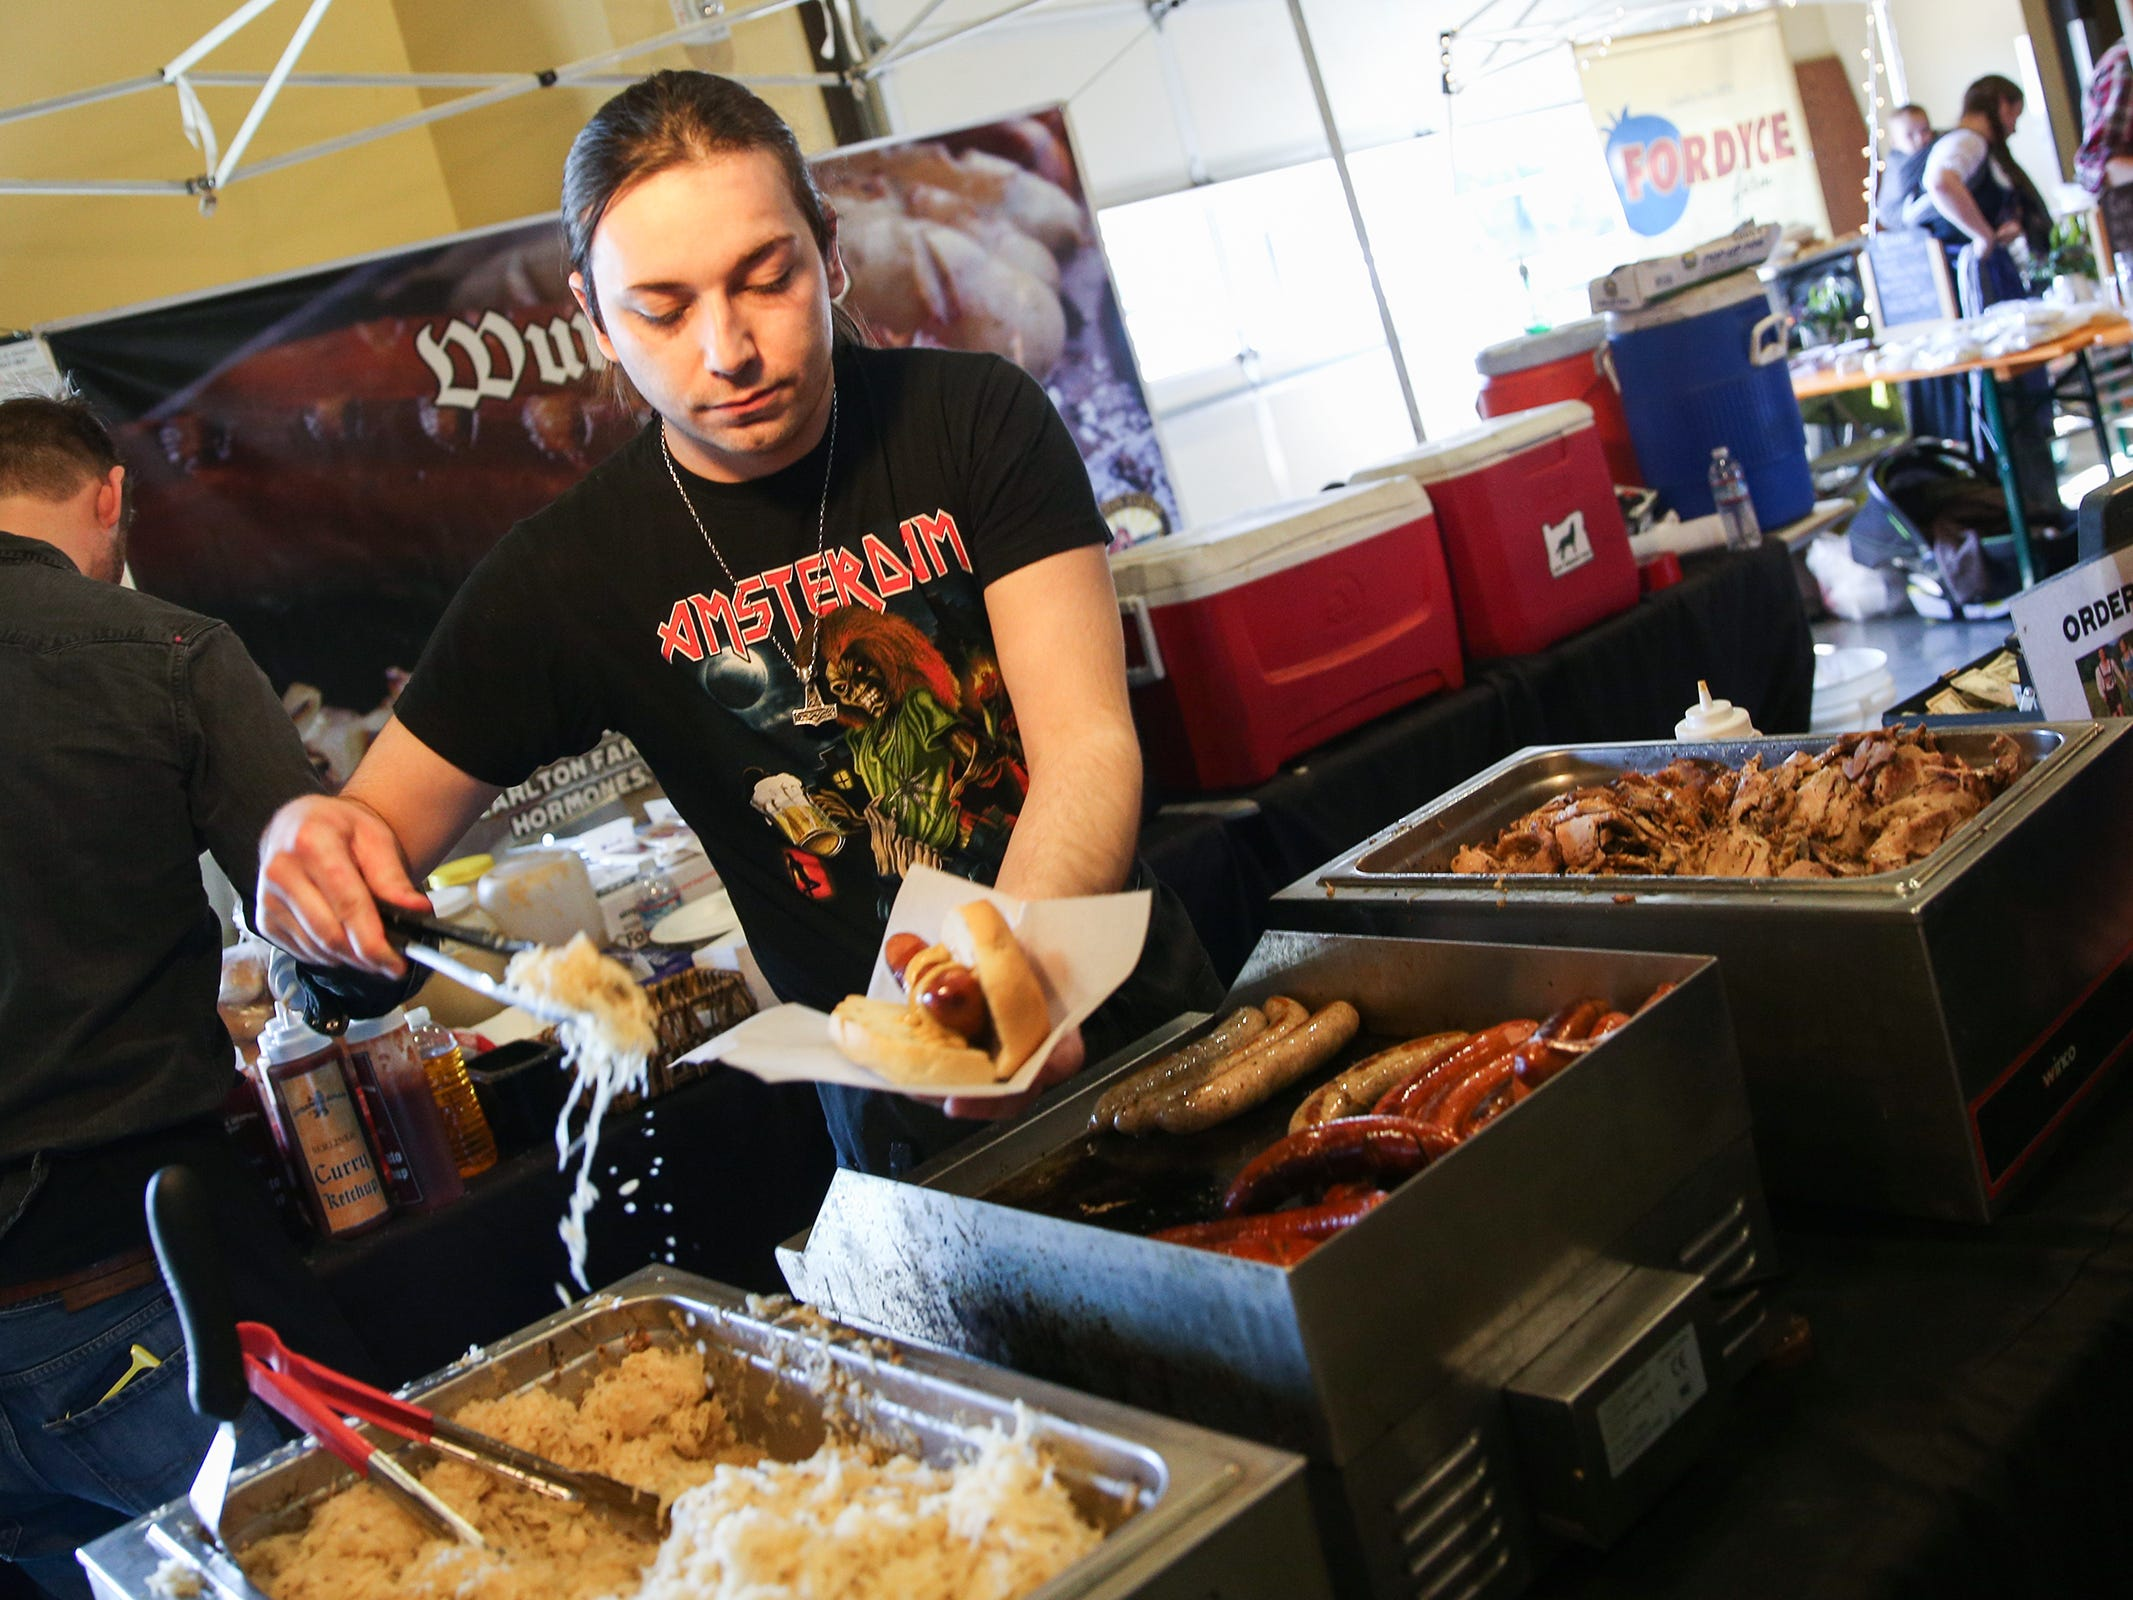 Josh Northcutt, of Portland based Urban German Grill, serves a plate during the annual Volksfest in Mt. Angel on Saturday, March 2, 2019.